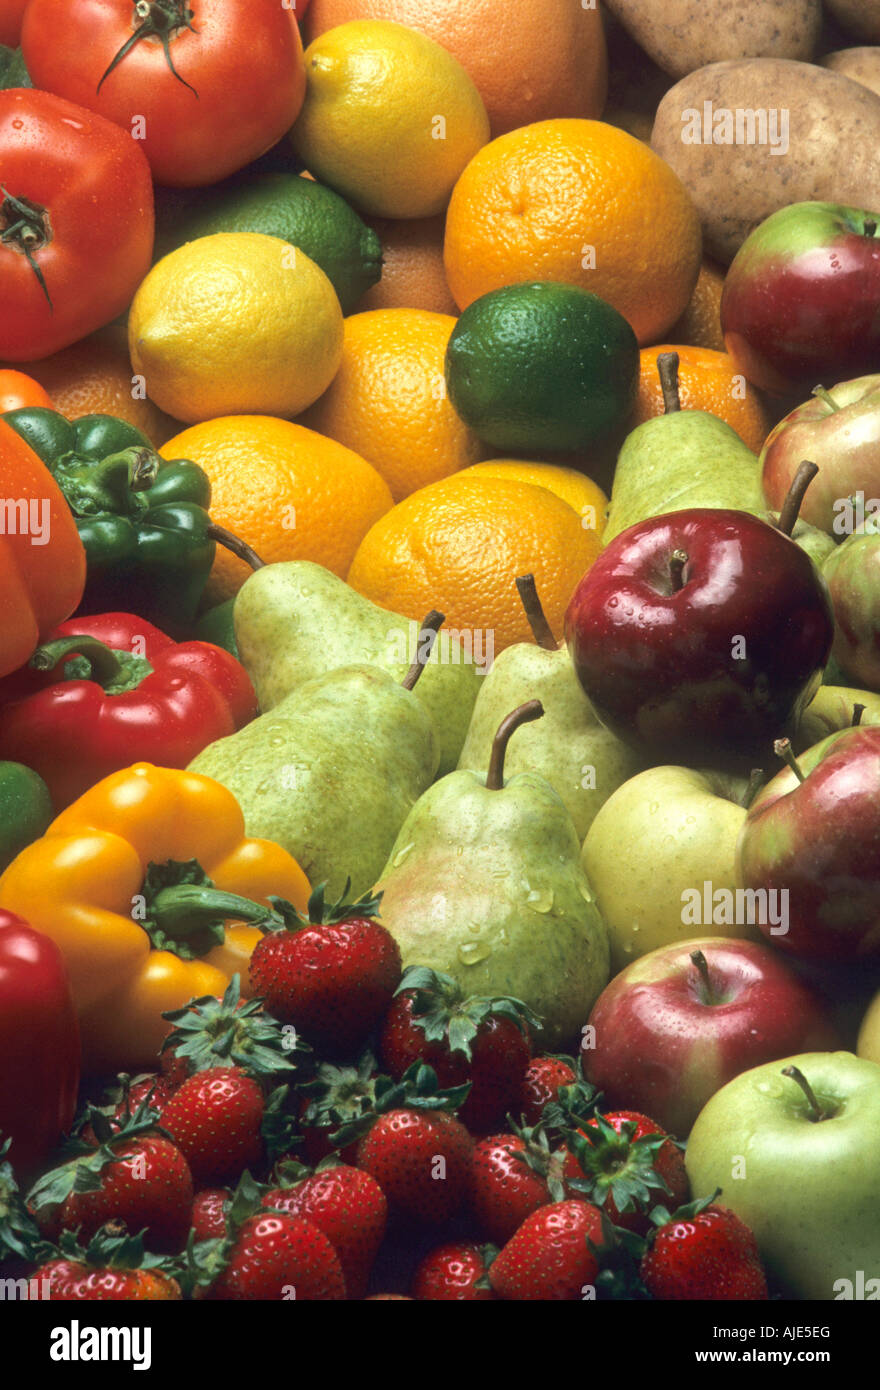 Cornucopia of mixed fruits and vegetables including apples pears strawberries oranges lemons limes peppers and potatoes - Stock Image